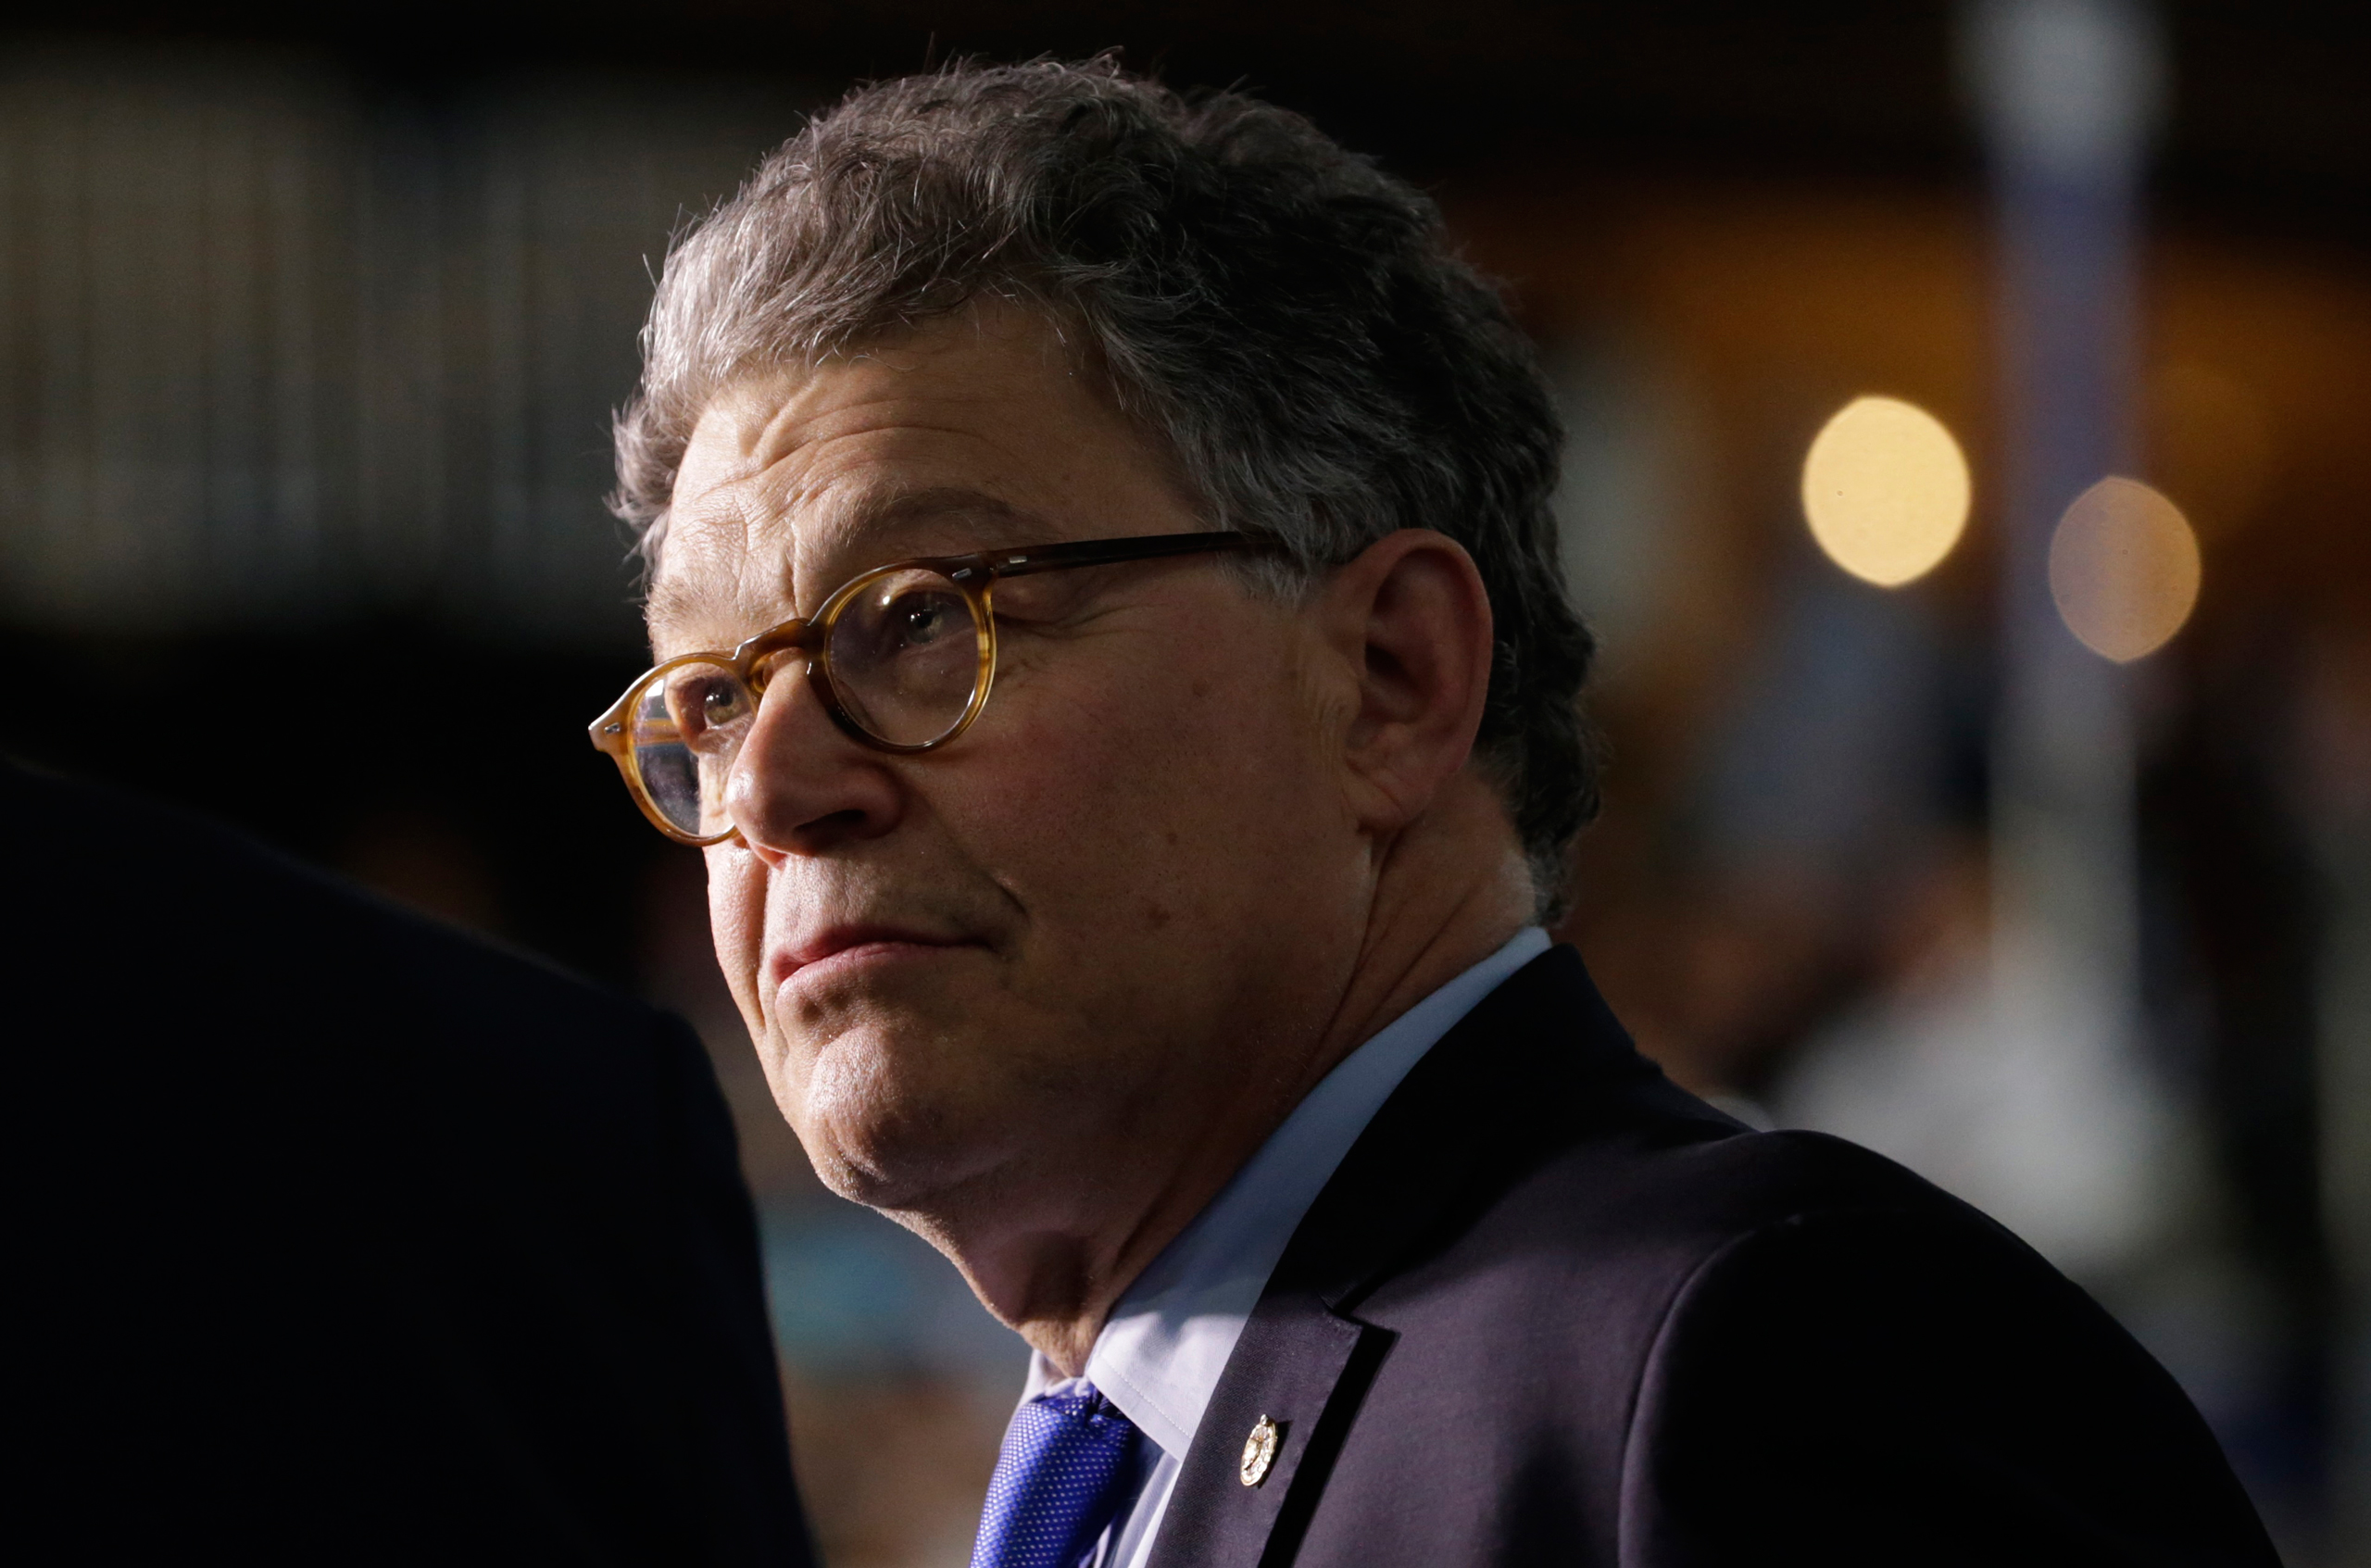 Senator Al Franken is seen at the Democratic National Convention in Philadelphia on July 27, 2016.